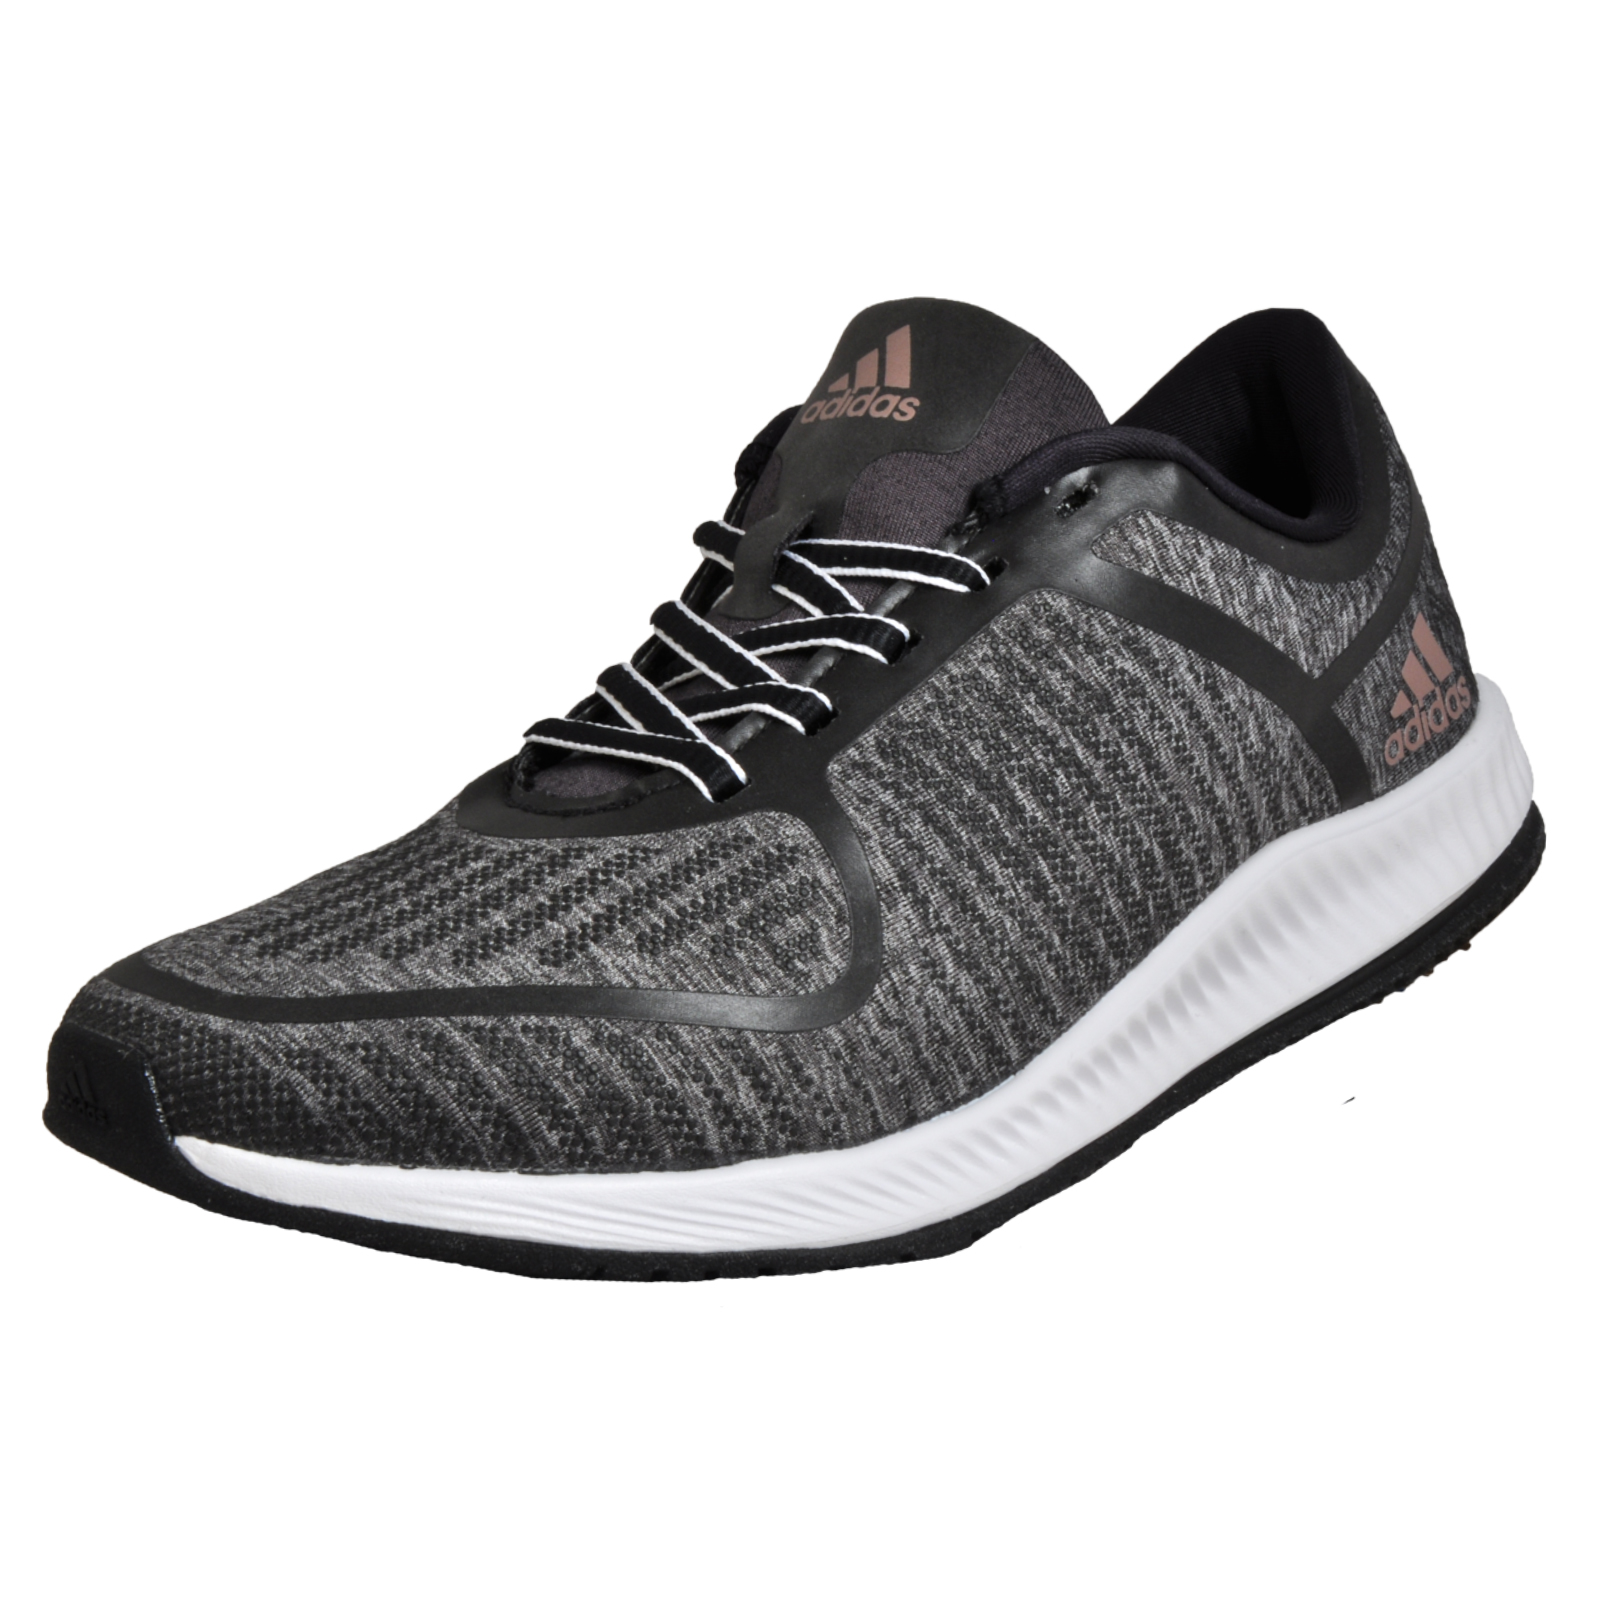 ecf3c26ce3c9 Details about Adidas Athletics Bounce Womens Running Shoes Fitness Gym  Trainers Grey